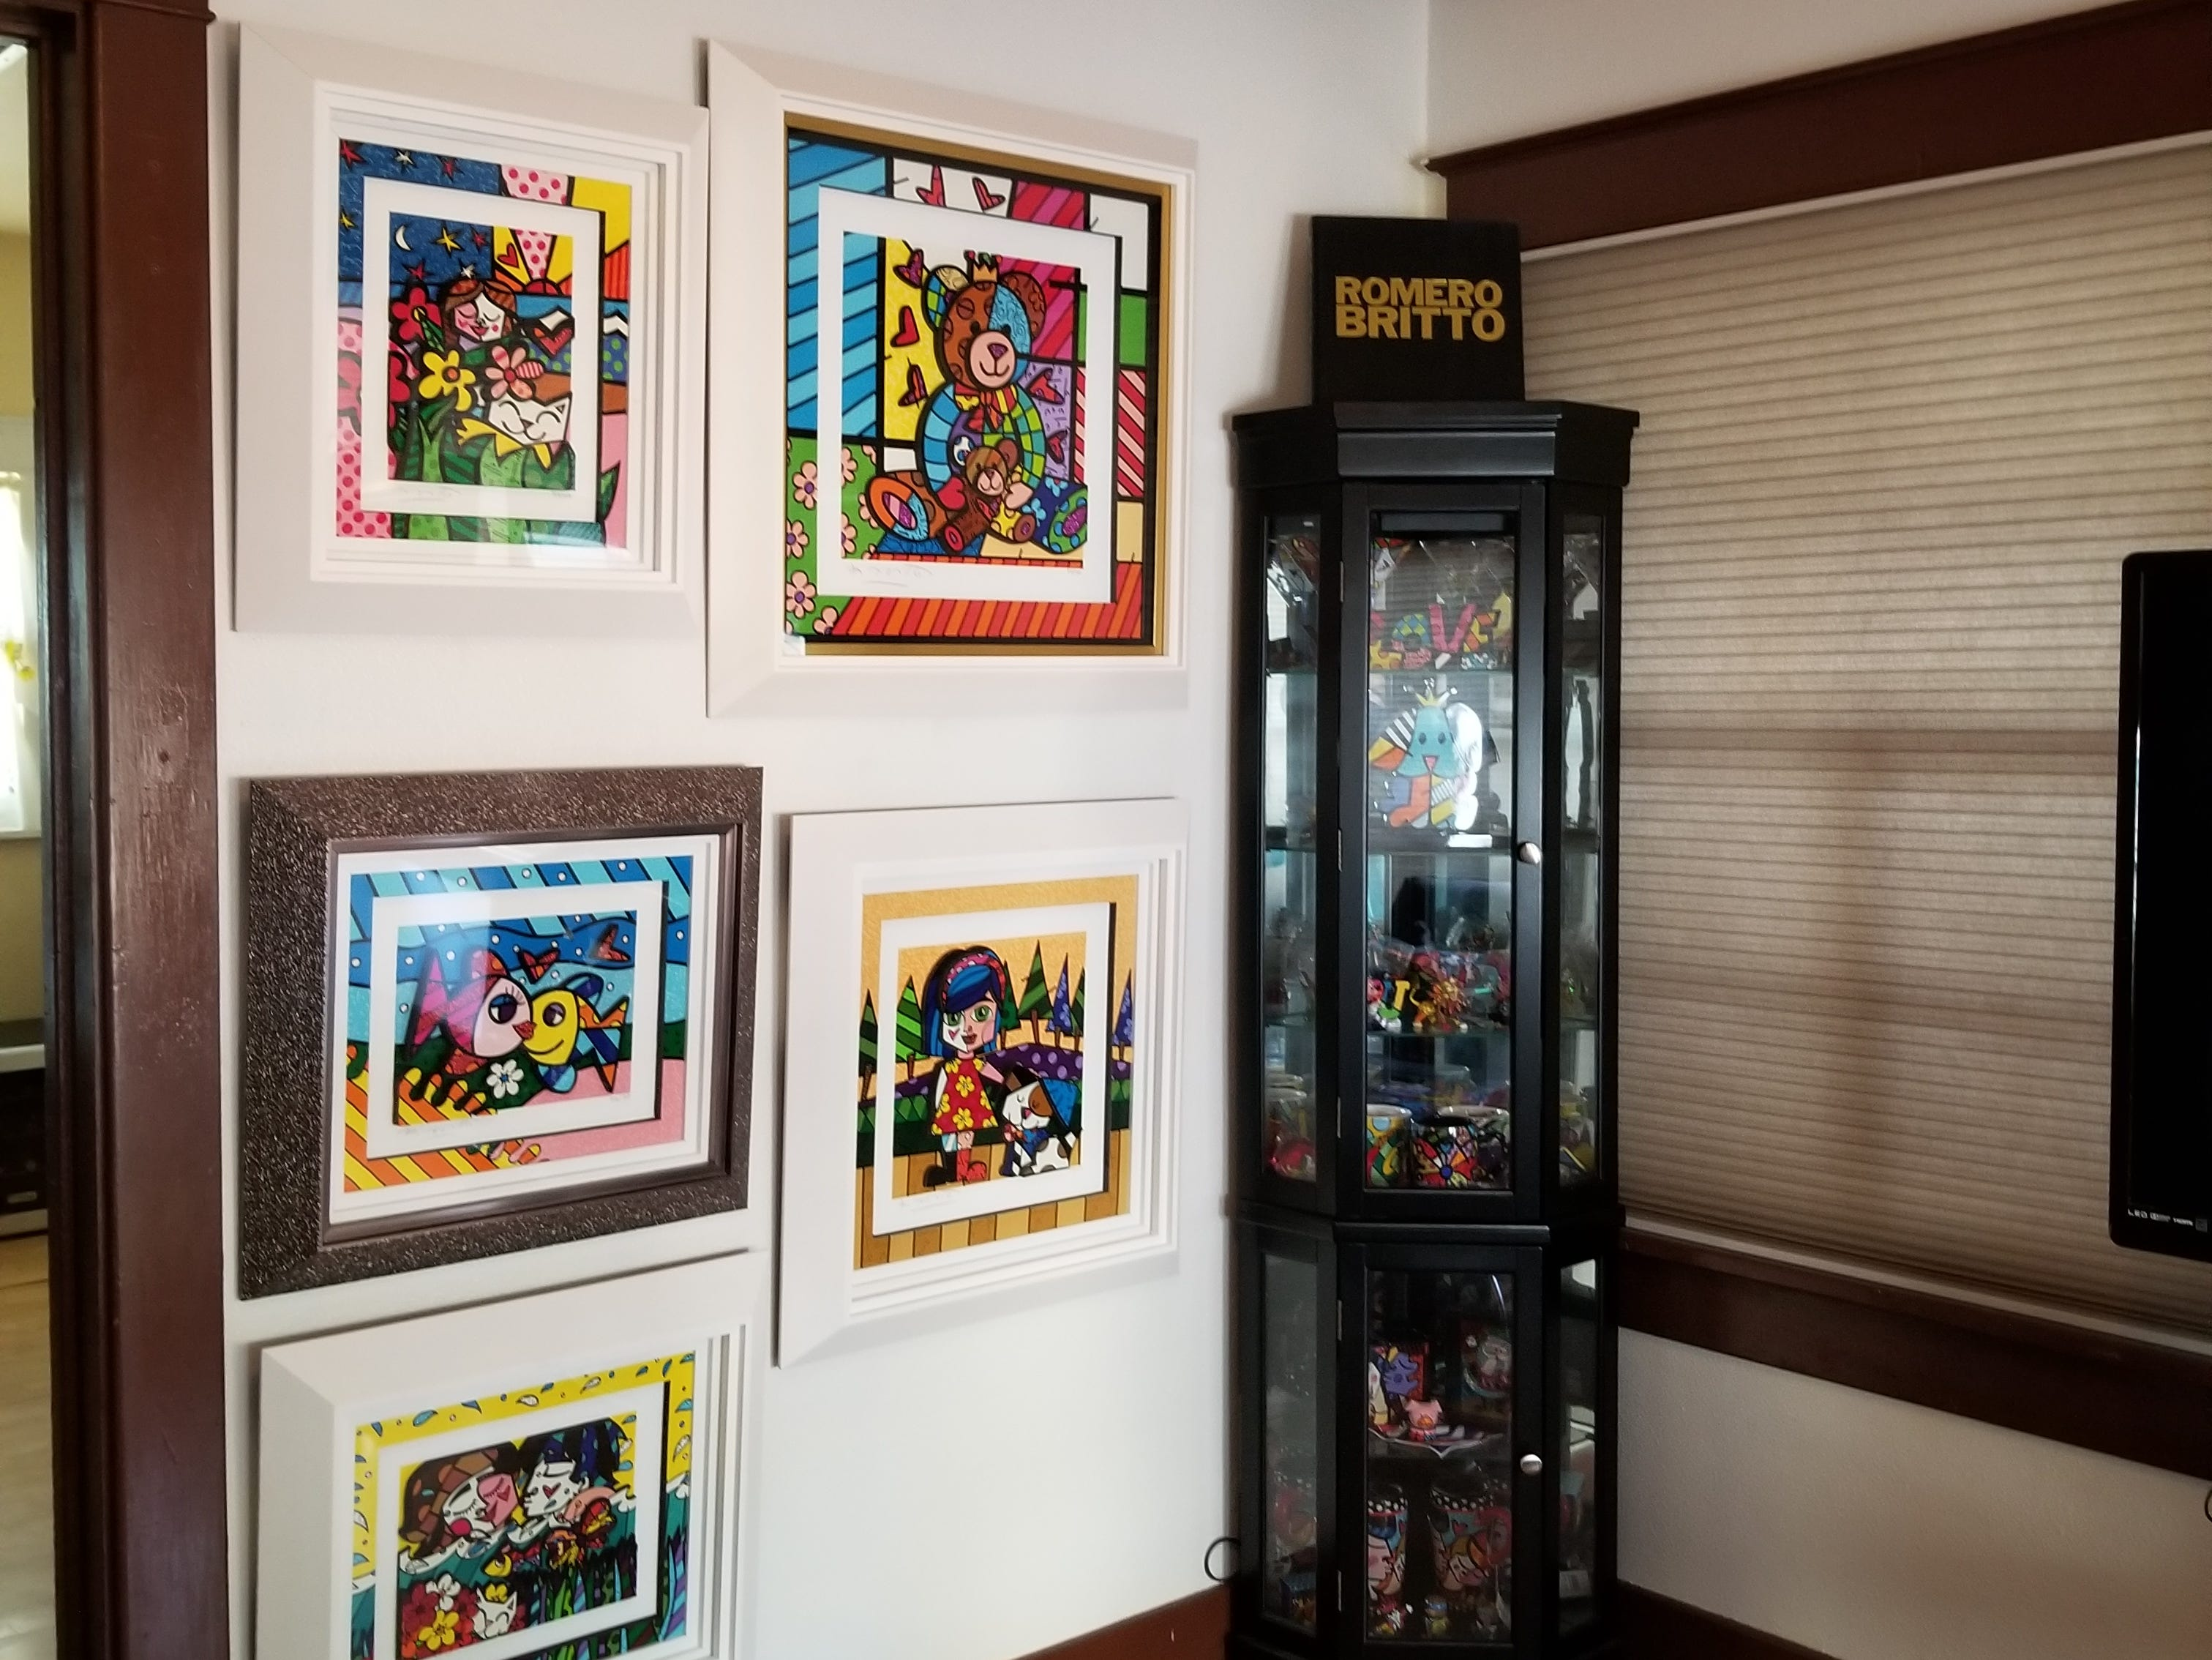 Bud painted the family room in bold primary color bands above the high wall moldings to compliment the artwork in their collection.